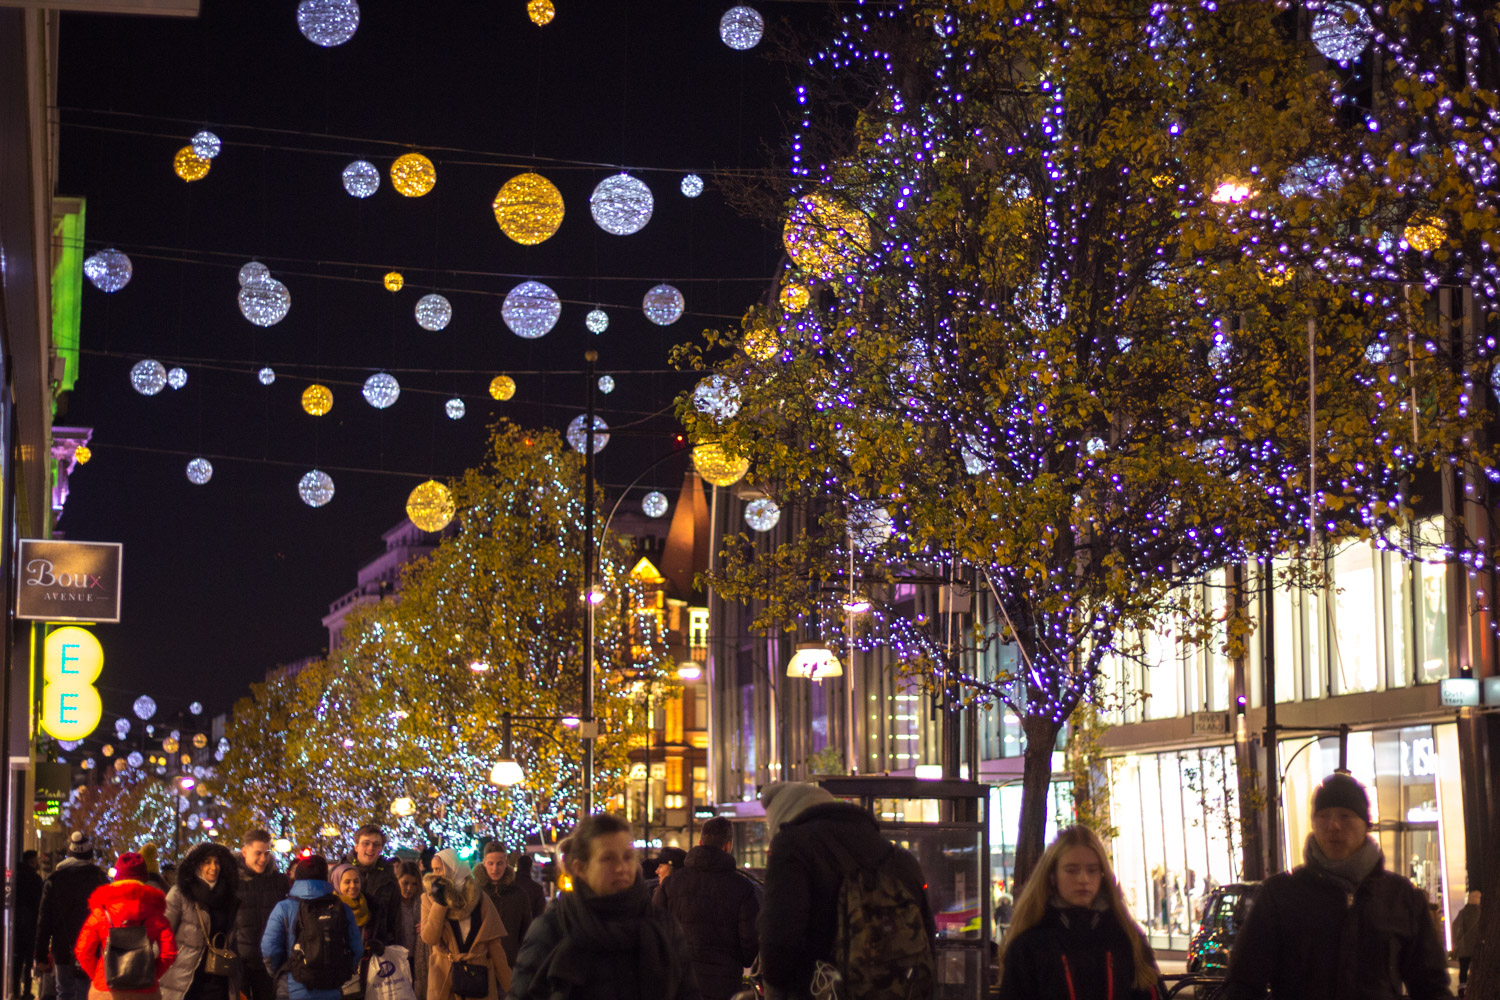 Oxford Street lit up for Christmas in London at night